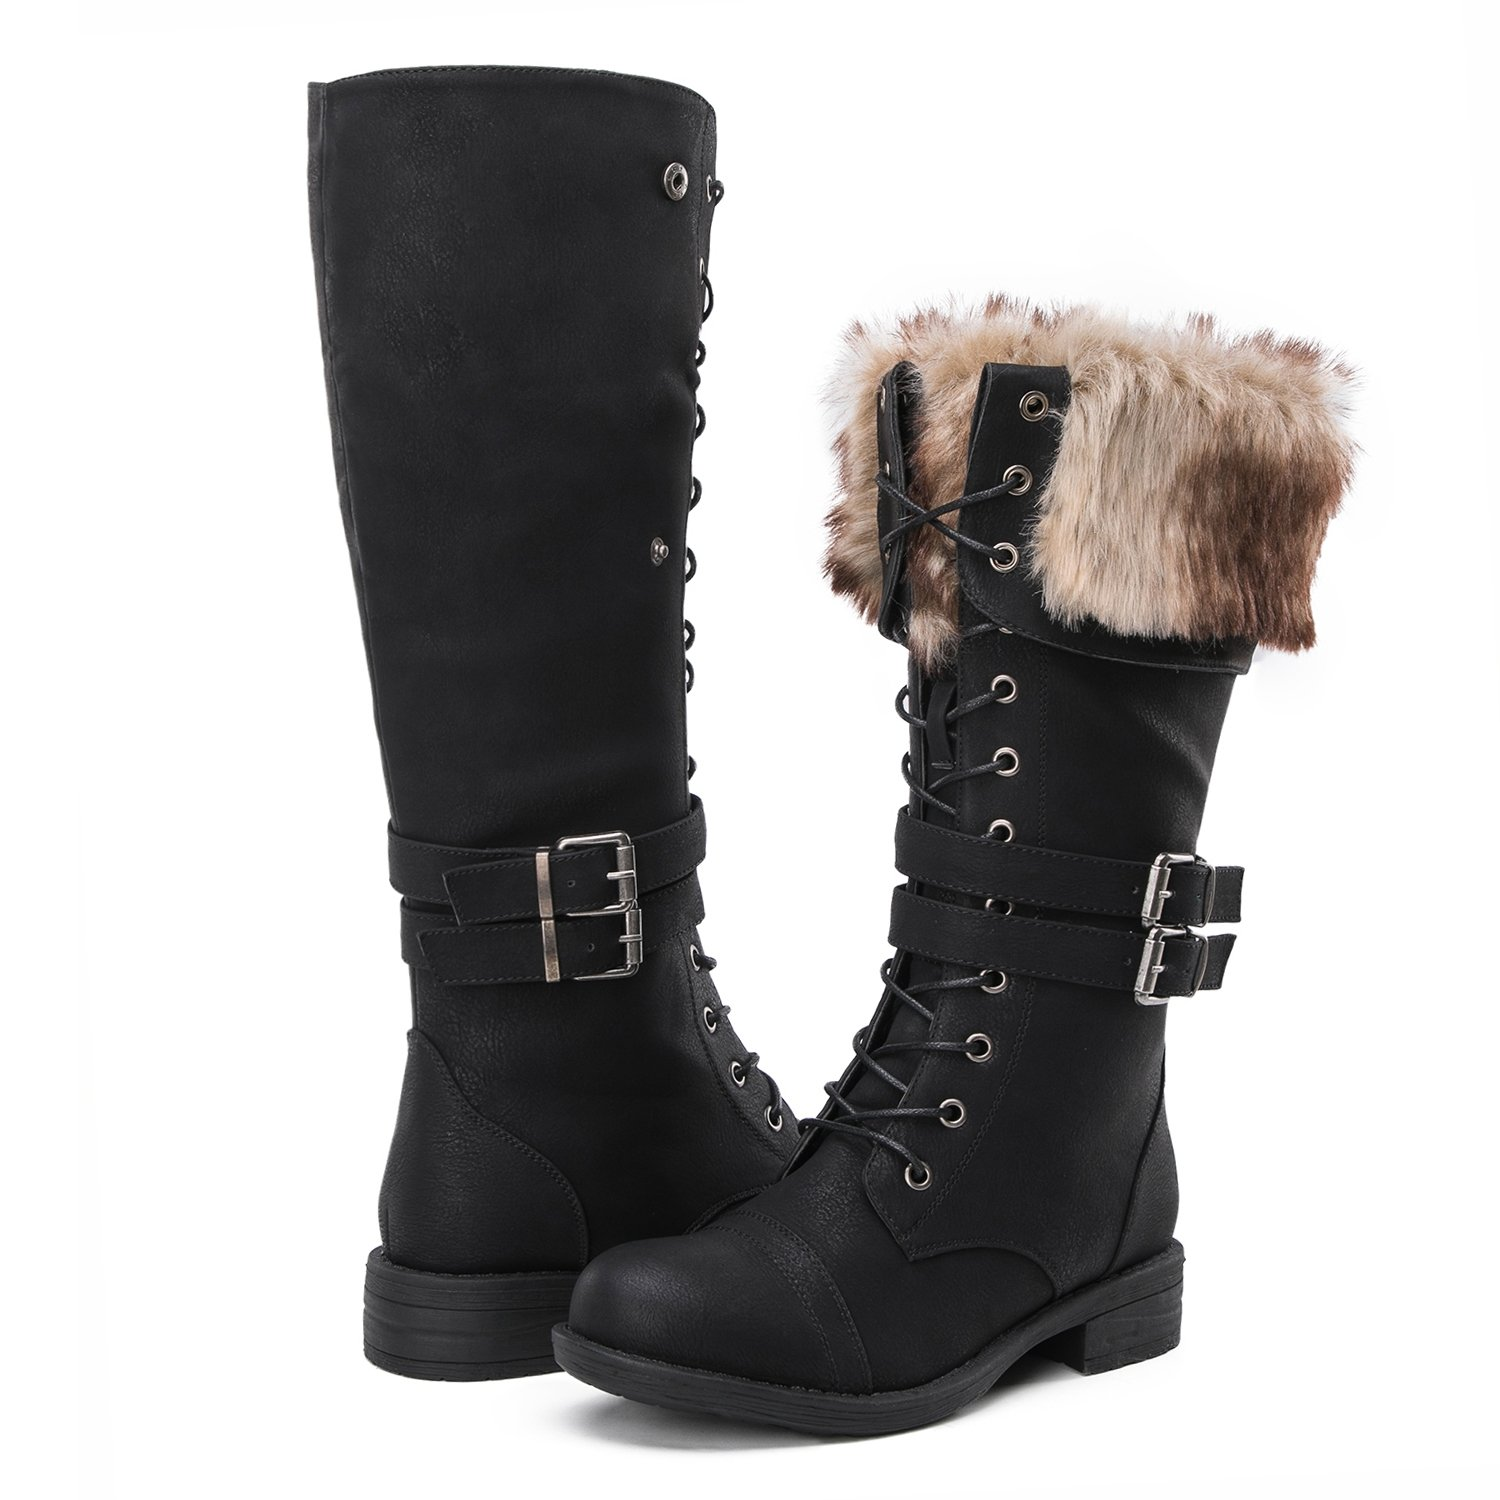 Global Win Women's Fashion Winter Boots (9 D(M) US Women's, YY02Black)